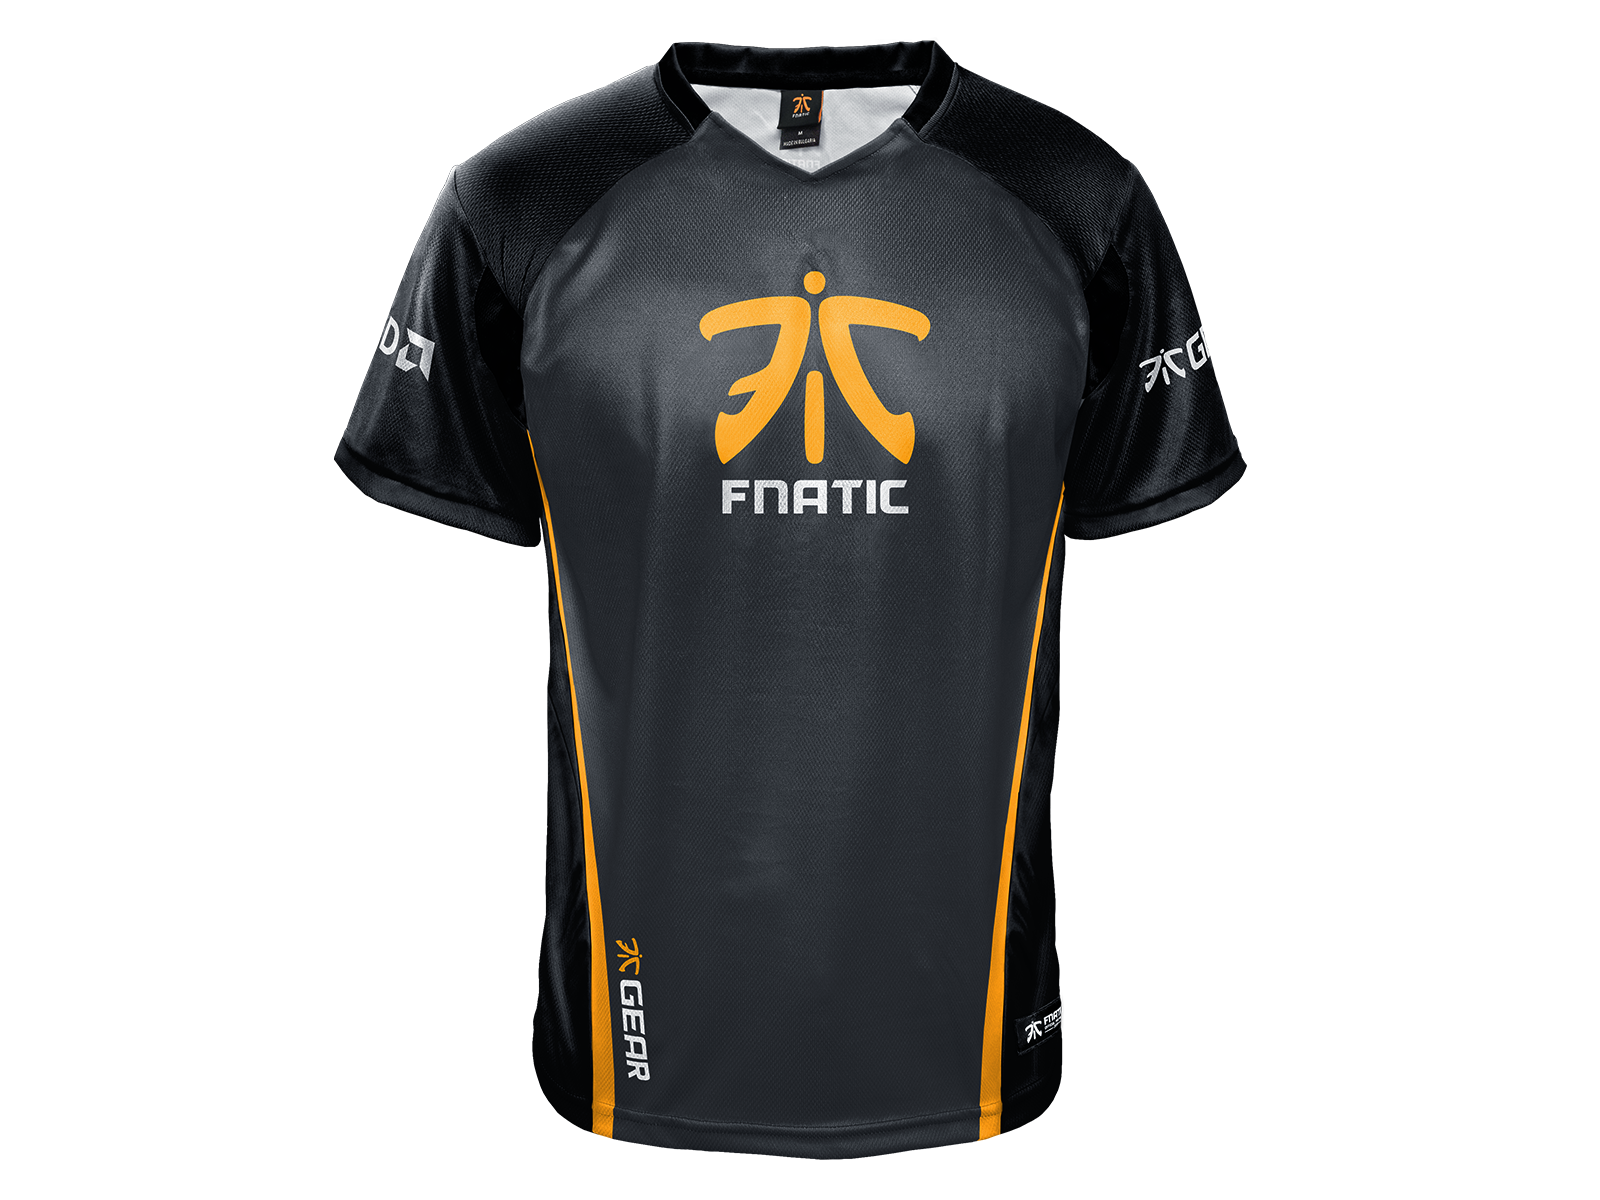 top fnatic male player jersey fnatic male player jersey with quersus stoel. Black Bedroom Furniture Sets. Home Design Ideas